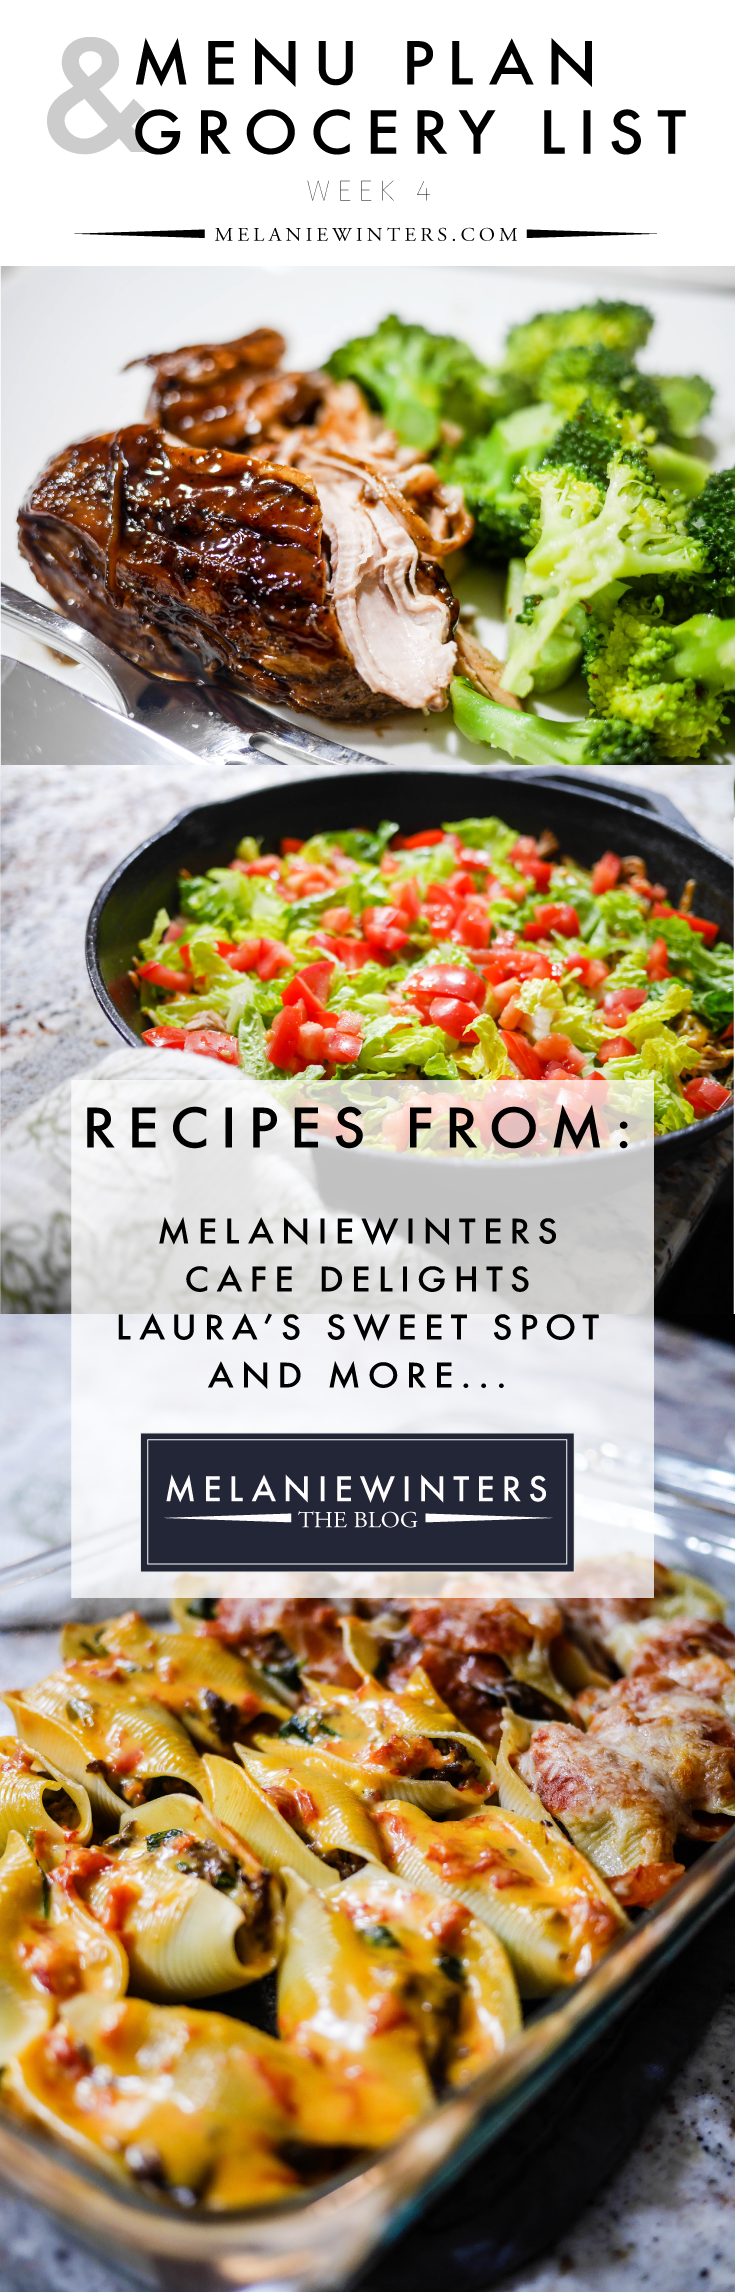 Week-long meal plans that are practical and delicious! Bonus? The grocery list is done for you - split into staples you should have in your freezer/fridge/pantry and additional items to purchase by the week. Pin to have all of the recipes at your fingertips for later!